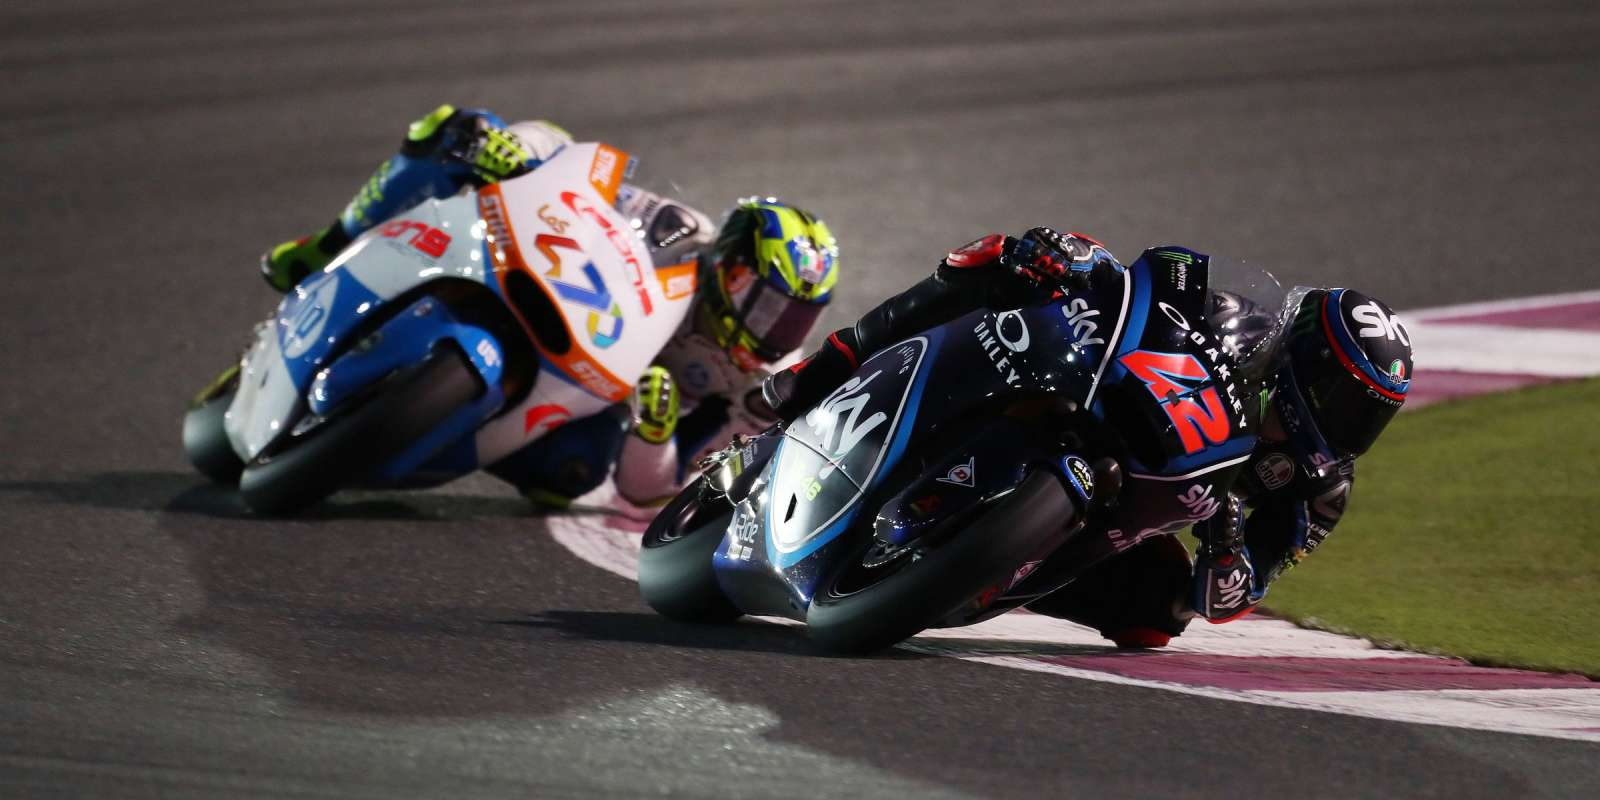 Monster athletes on Sunday at the 2018 MotoGP in Losail, Qatar